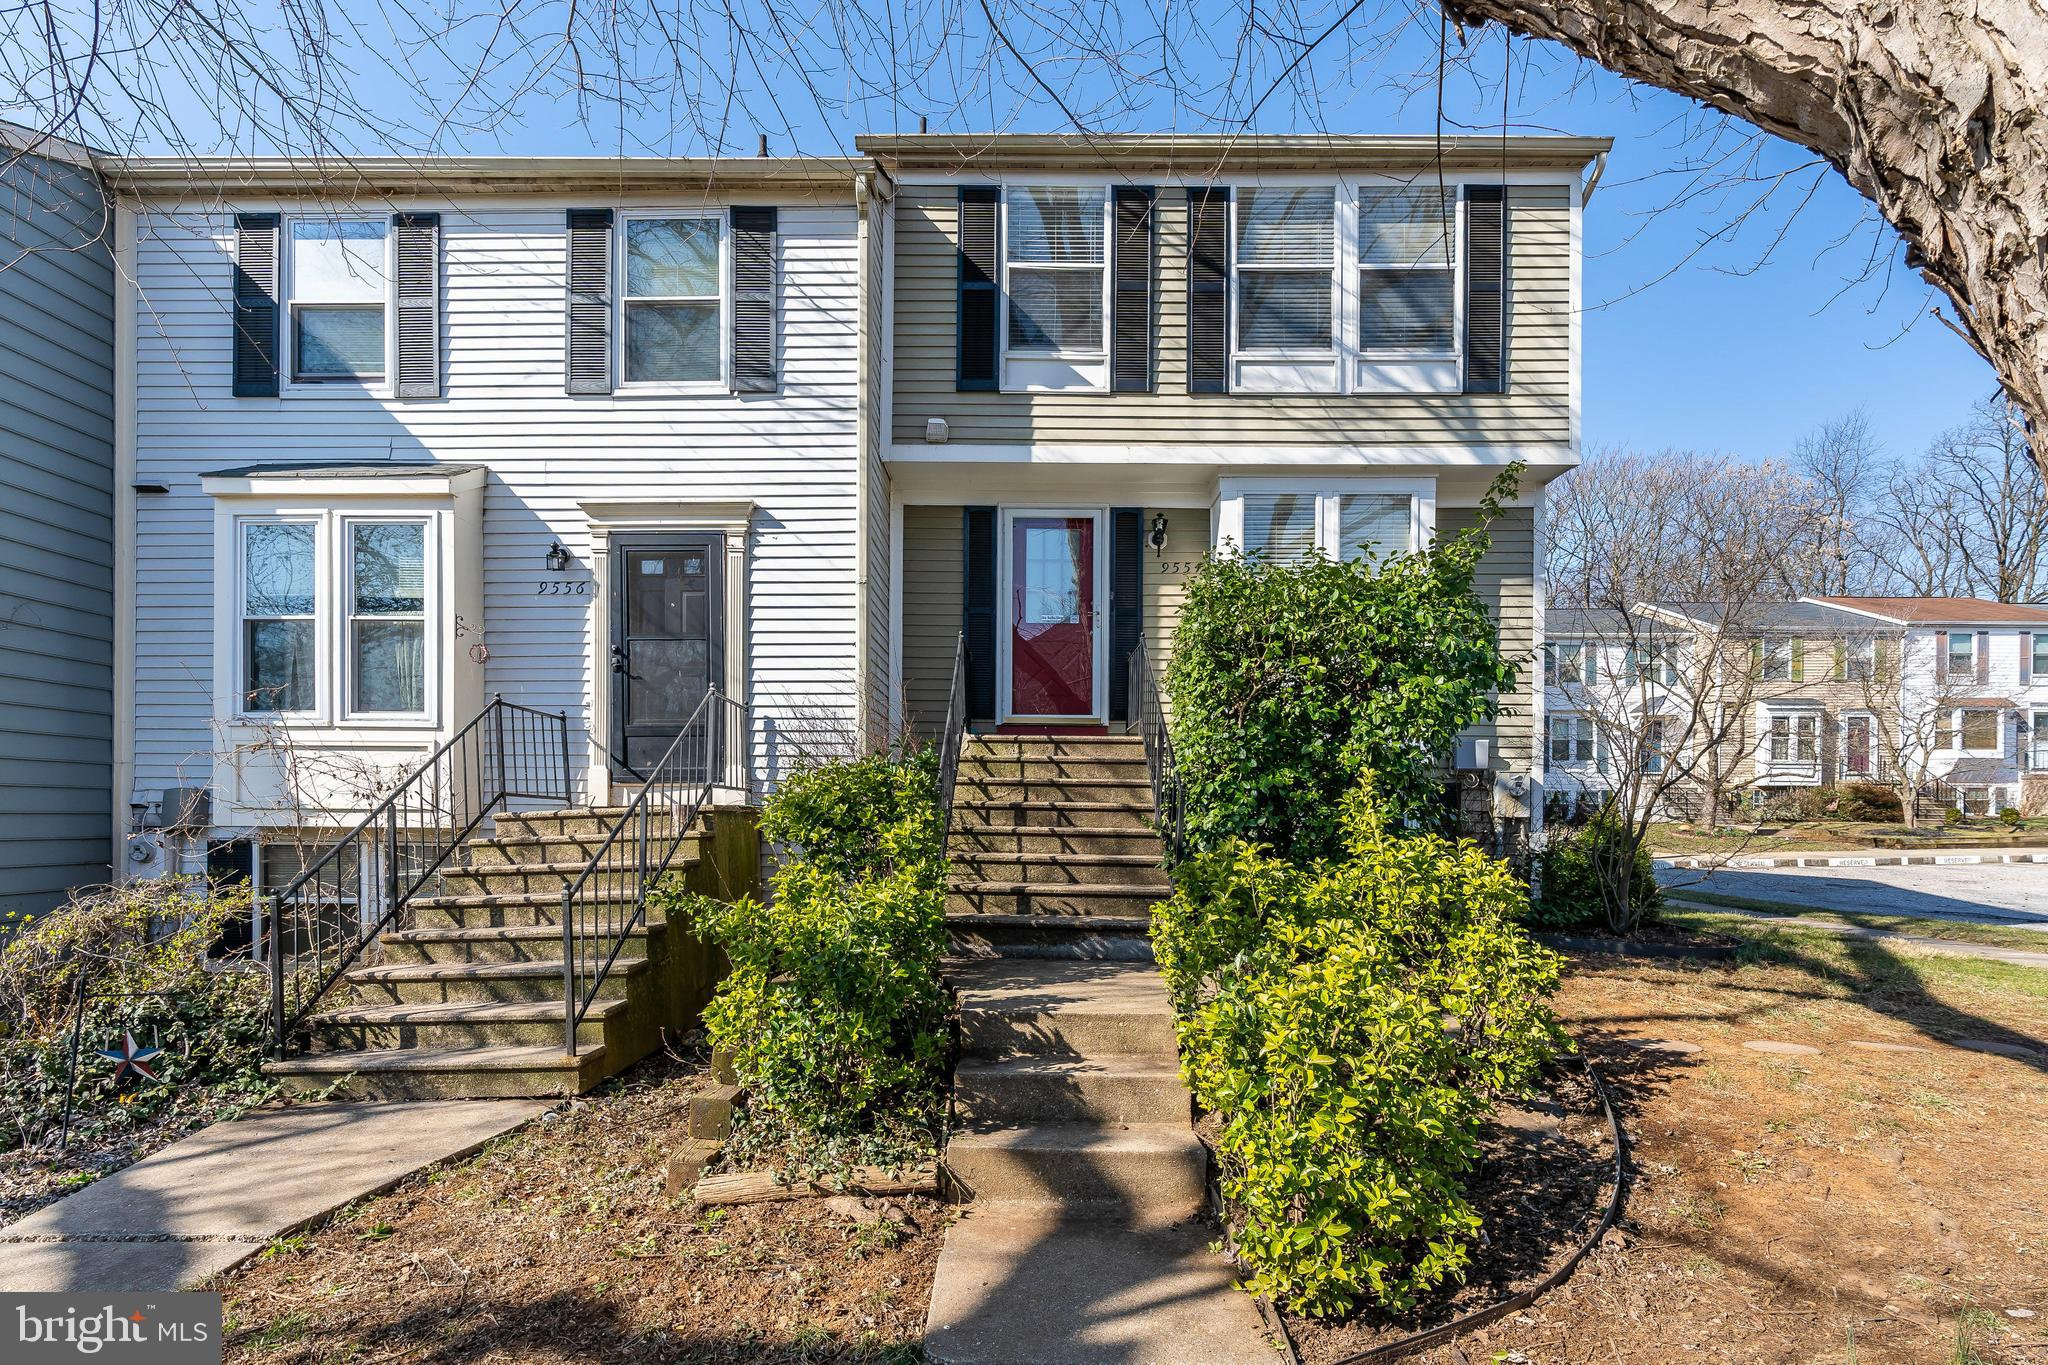 9554 GLEN OAKS LANE, COLUMBIA, MD 21046